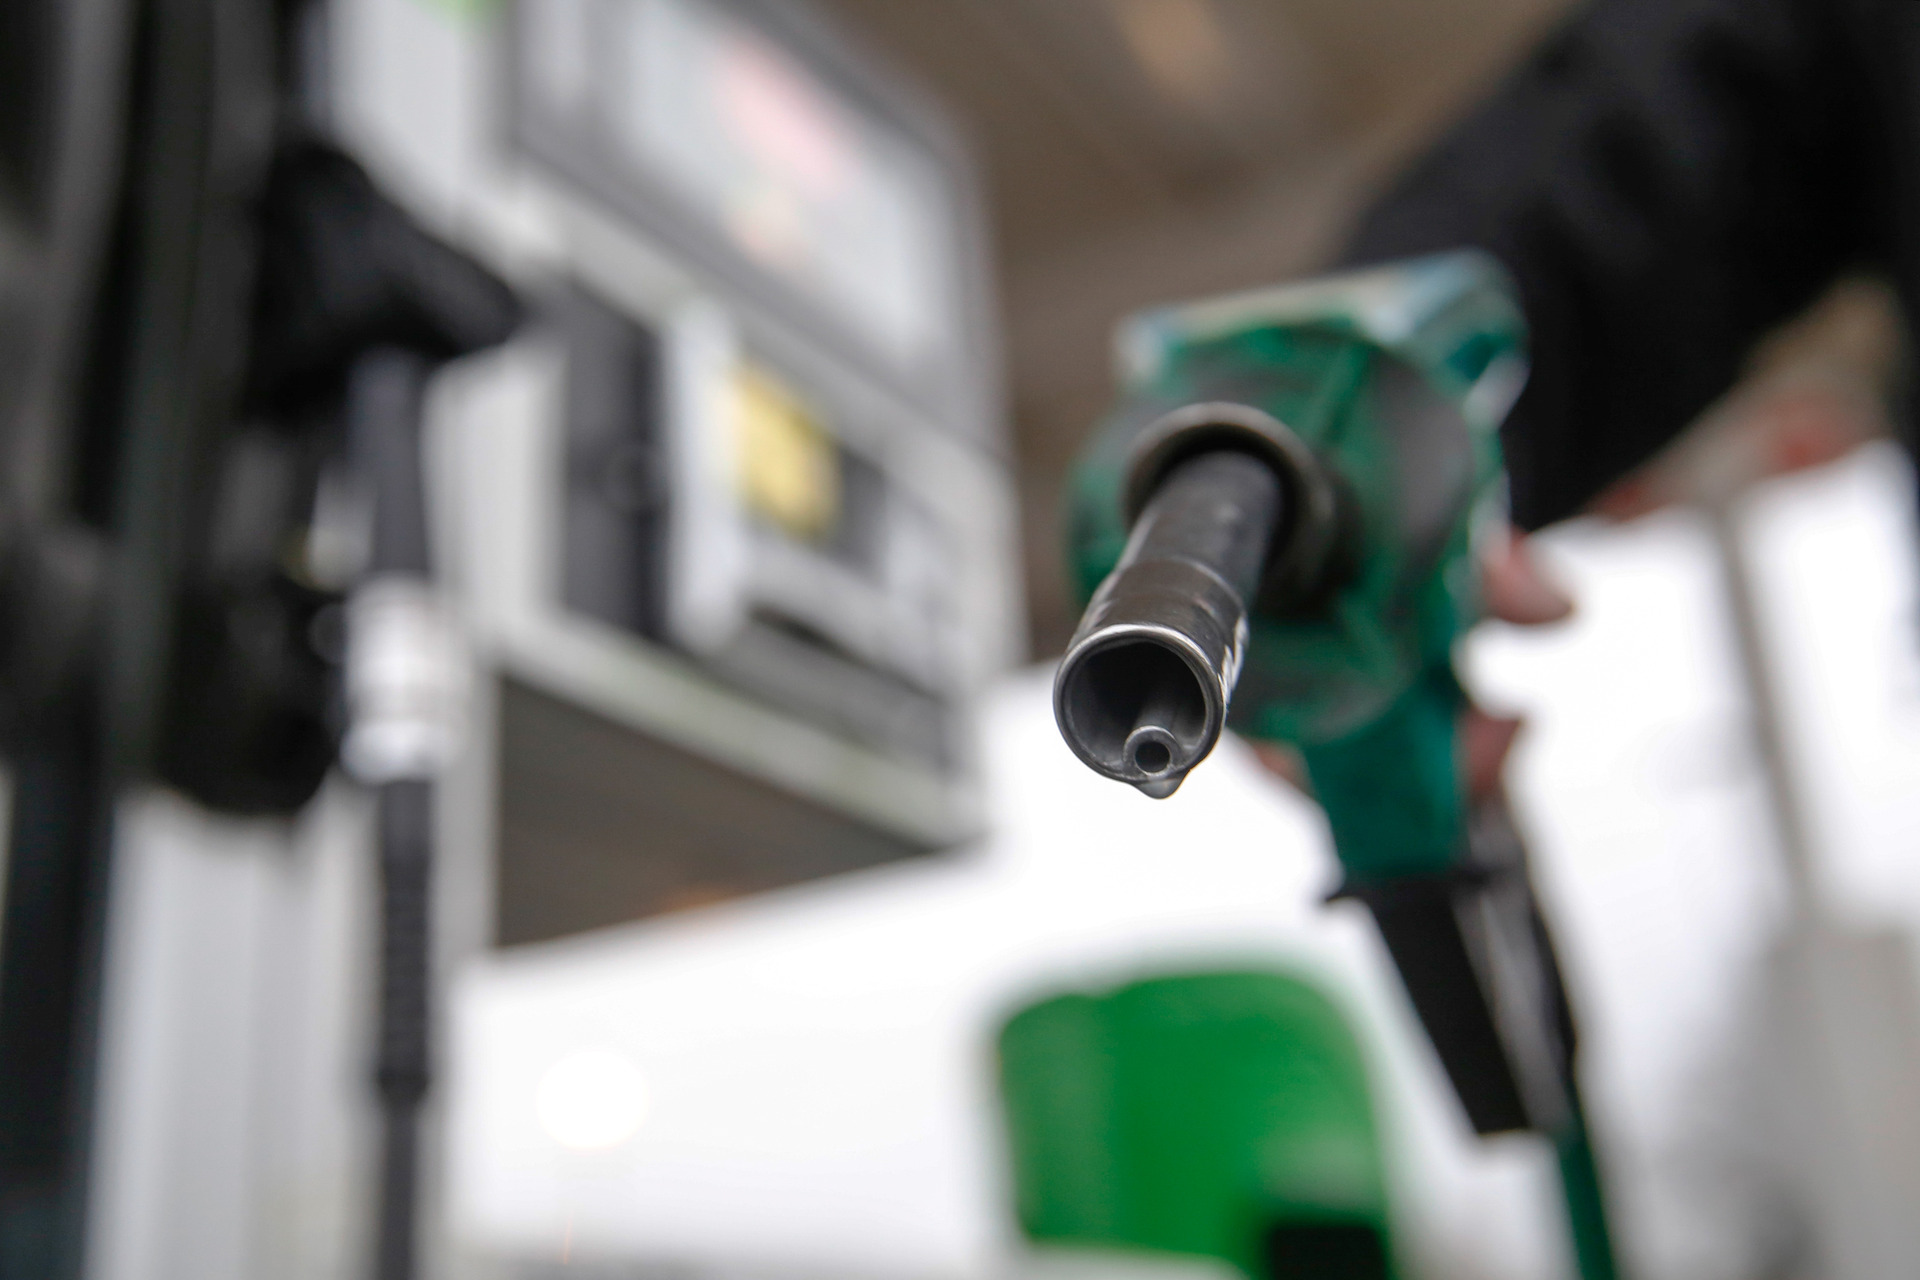 Price wars: Is this the cheapest fuel in New Zealand?